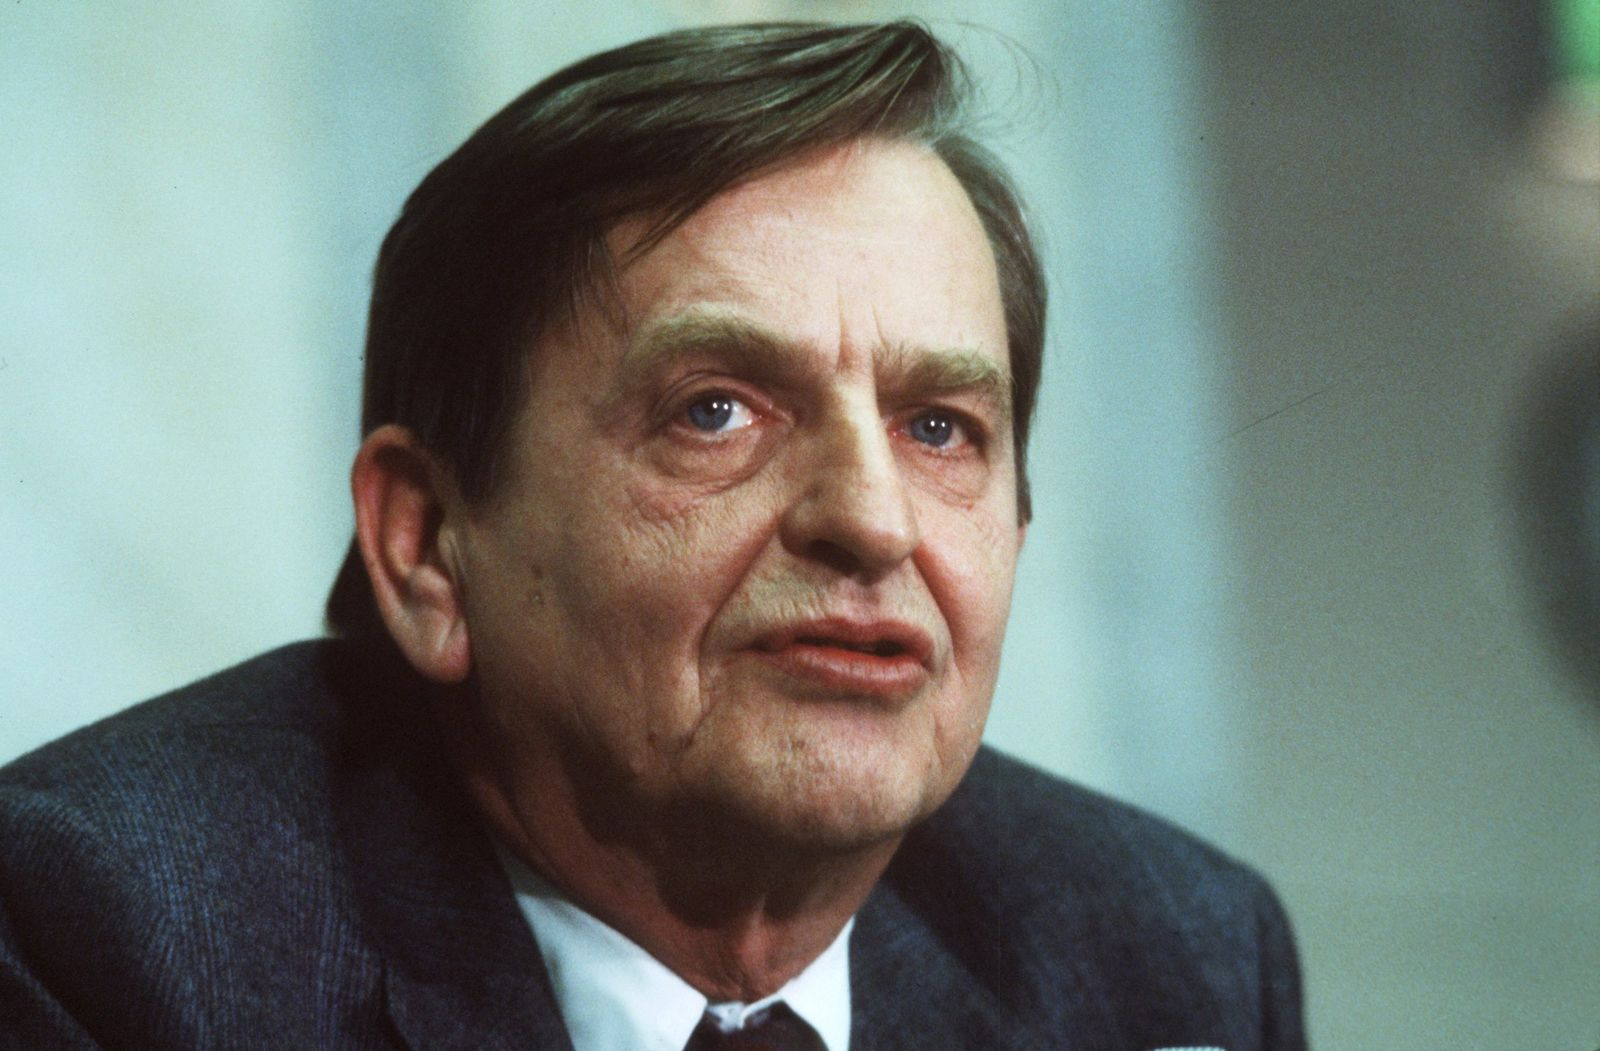 New findings to be announced in Olof Palme assassination, Stockholm, Sweden - 12 Dec 1983